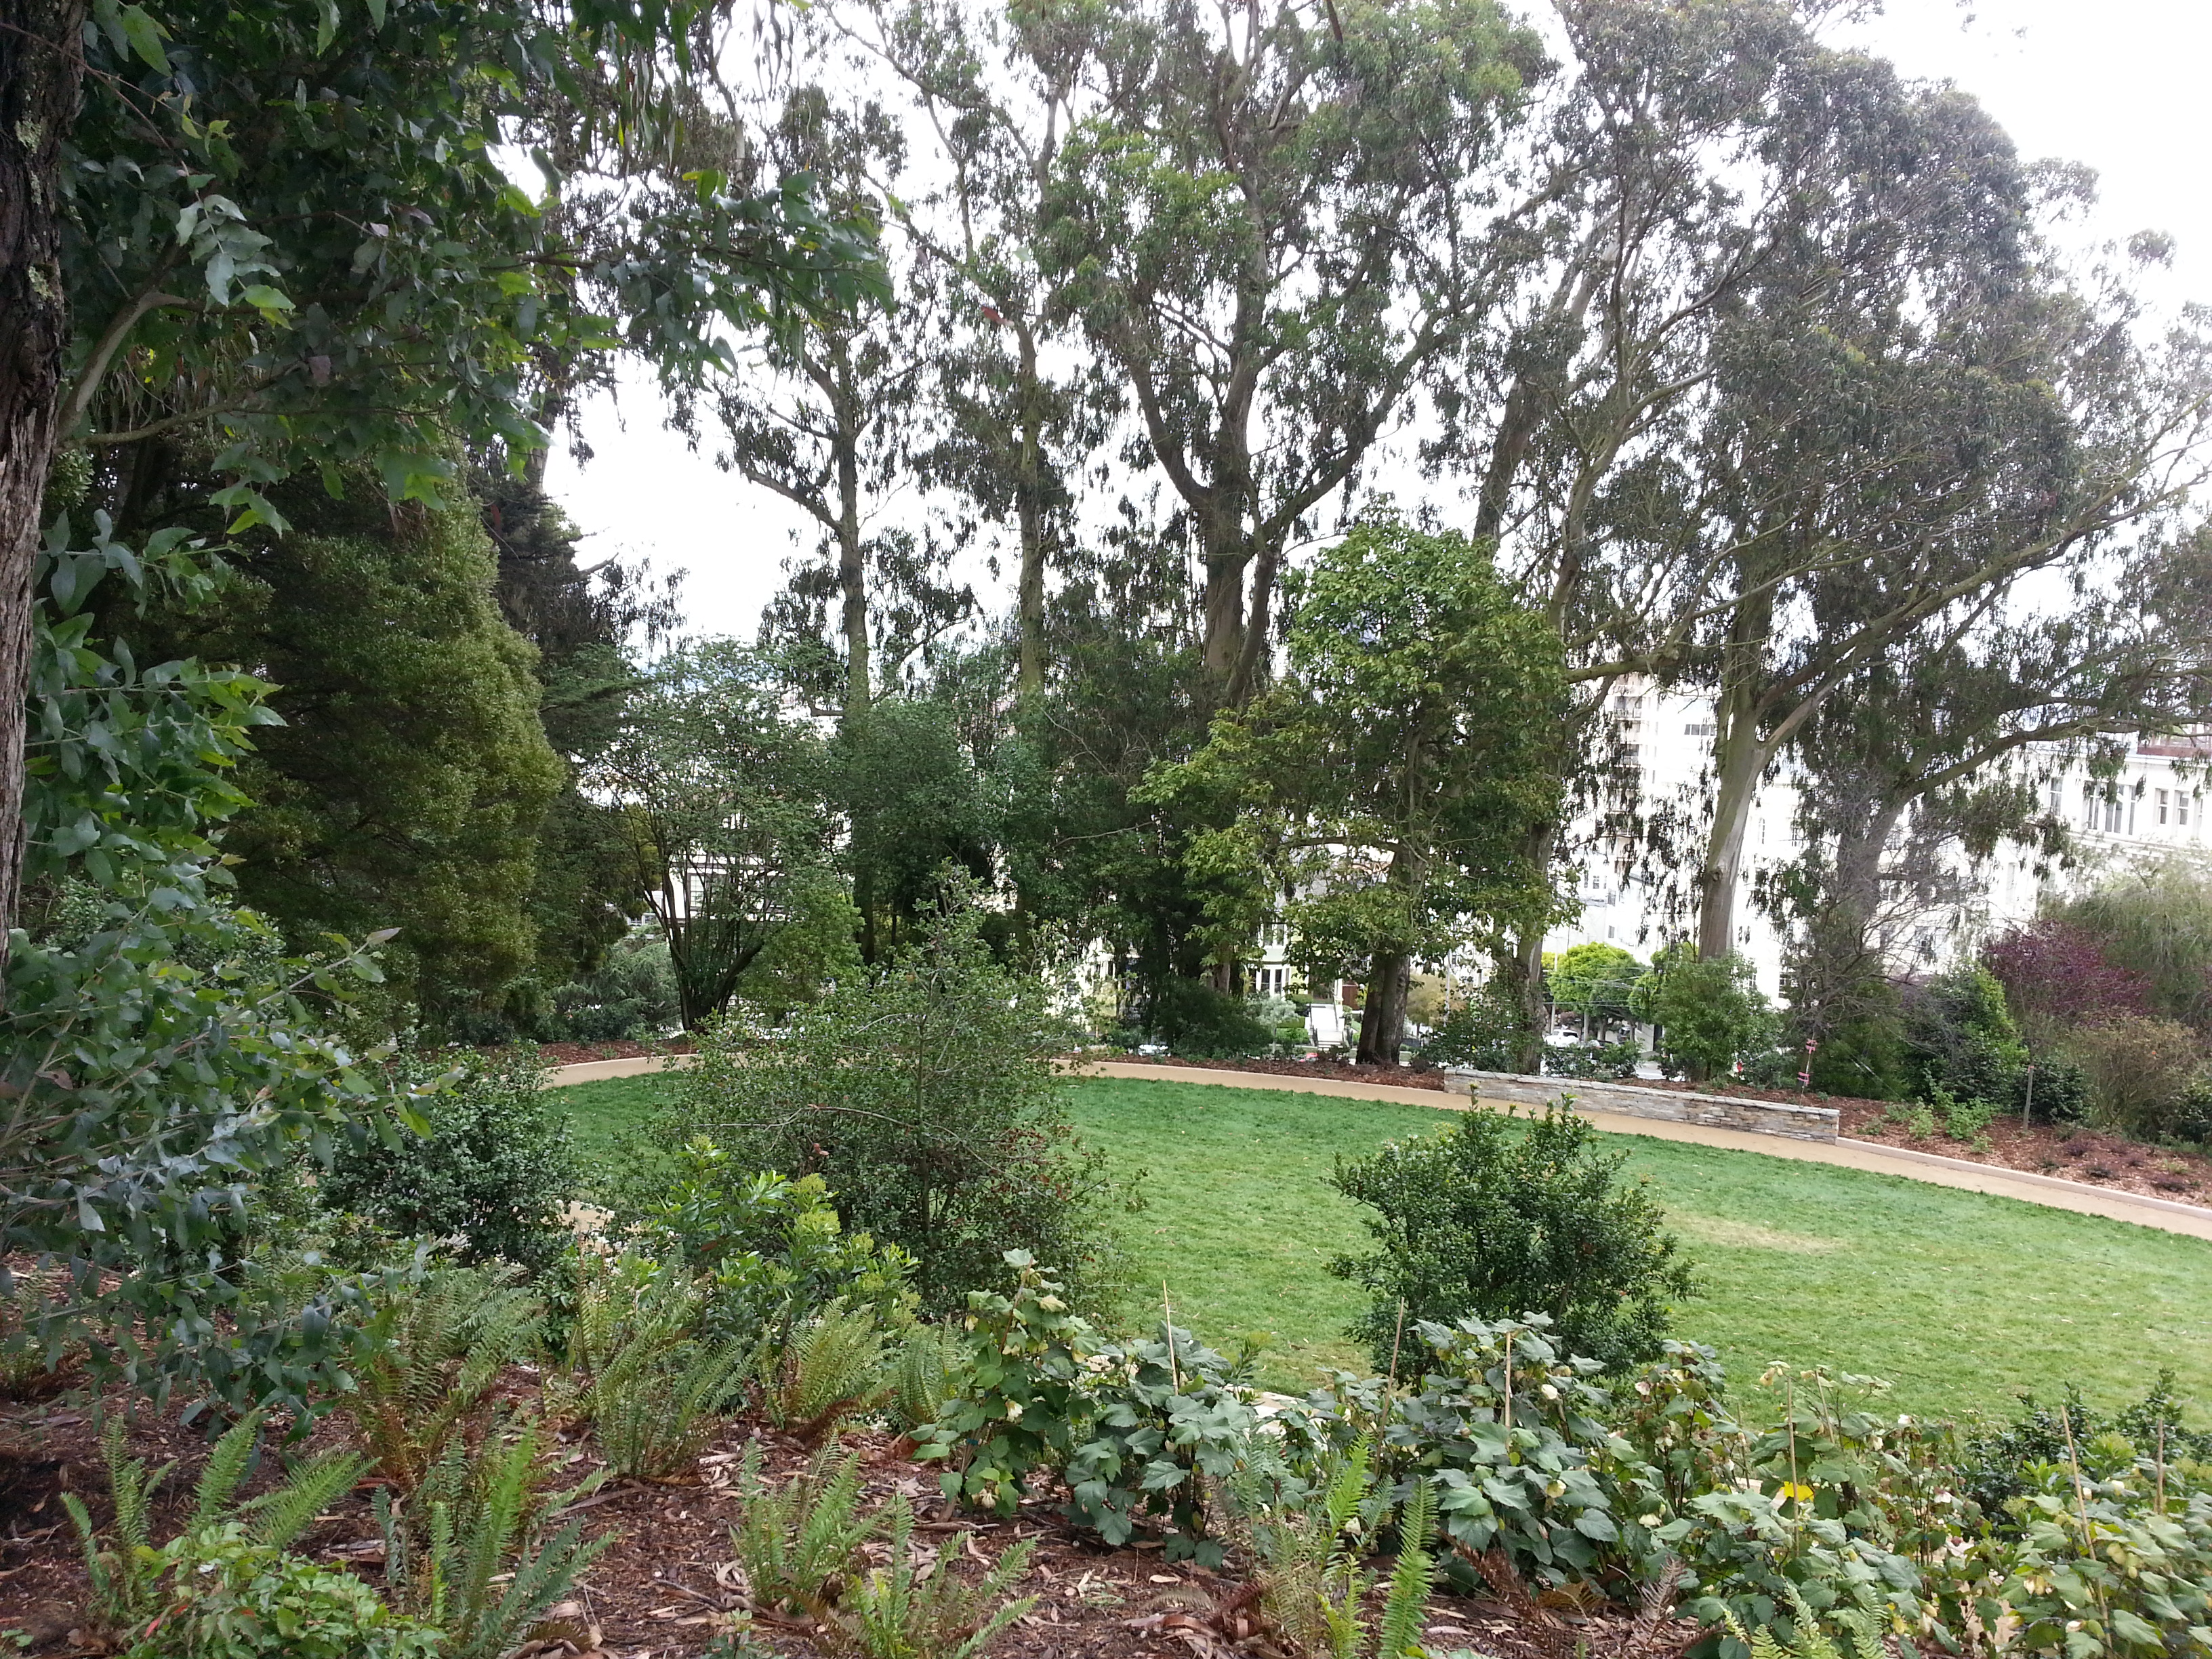 Pacific Heights park